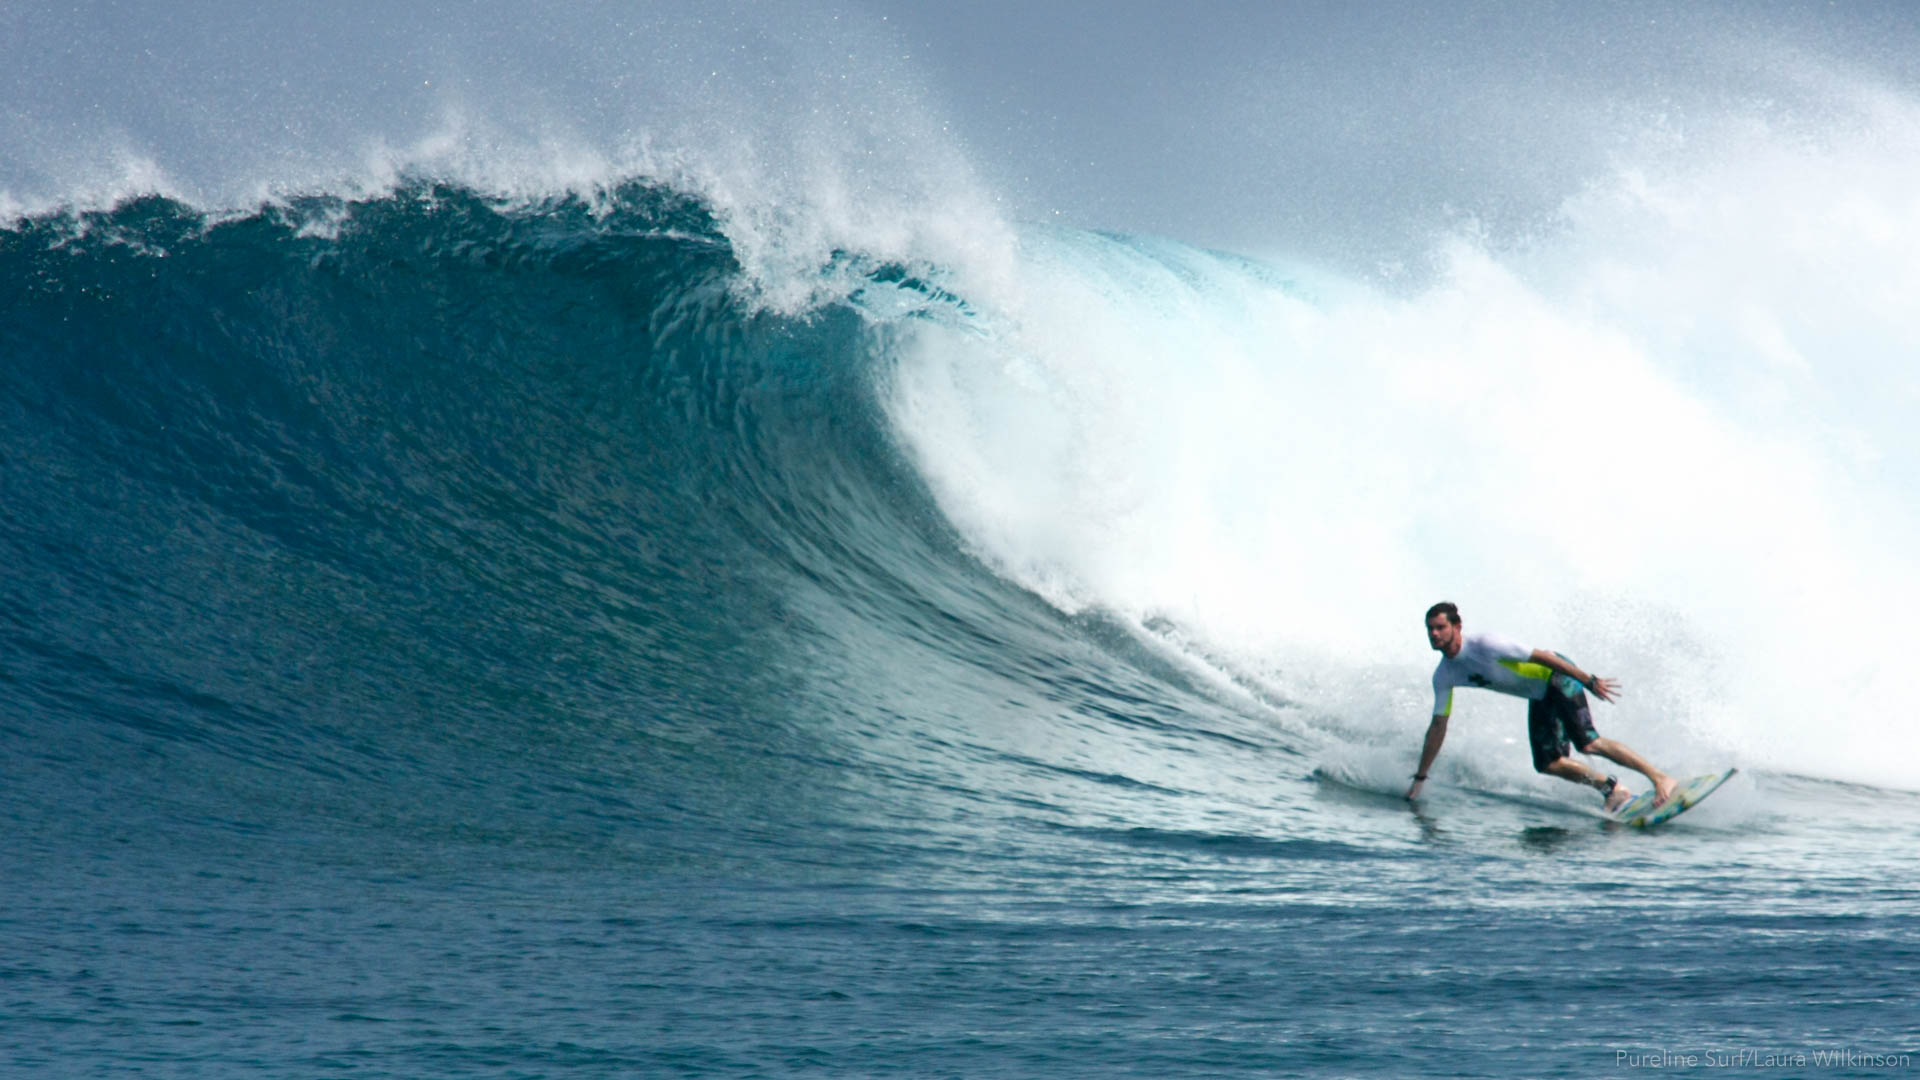 Sultans in the Maldives is a great surf spot, a wave we really enjoy utilising in our worldwide surf coaching trips with Pureline Surf.